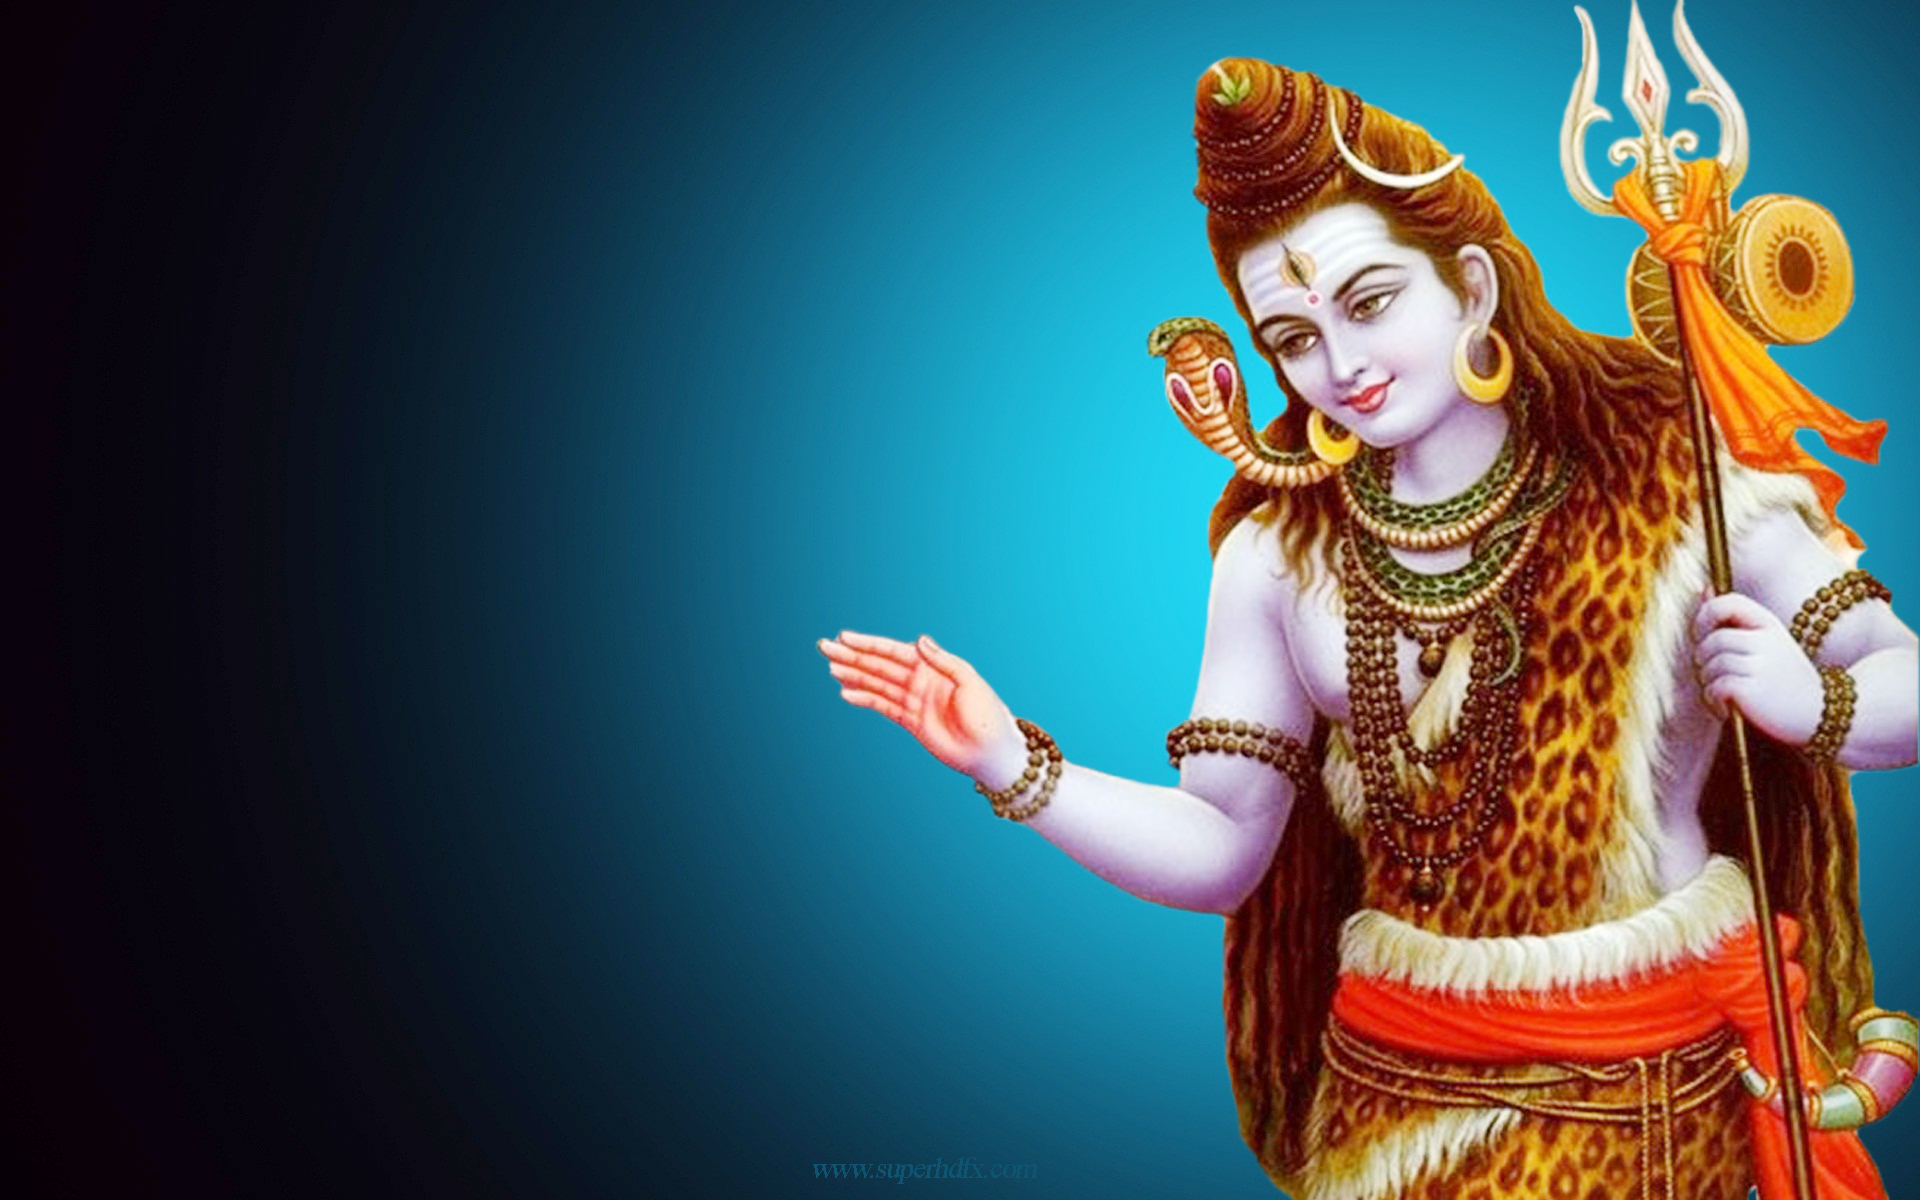 Shiva Wallpaper In Hd: Lord Shiva Images, Lord Shiva Photos, Hindu God Shiva HD